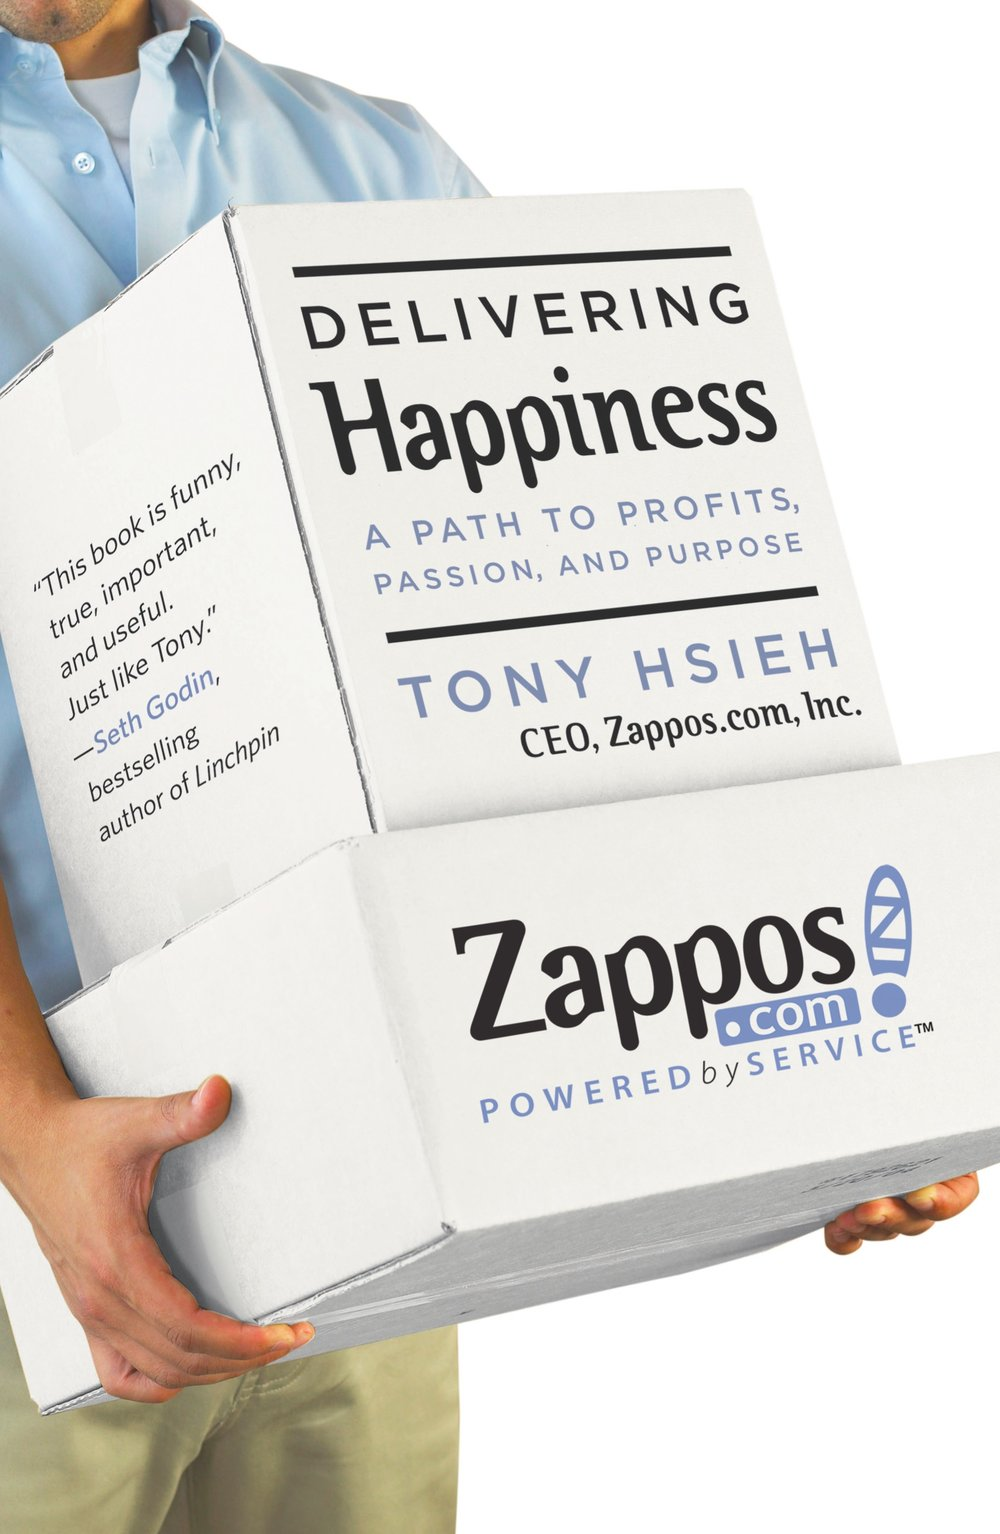 Deliveringhappiness.jpg